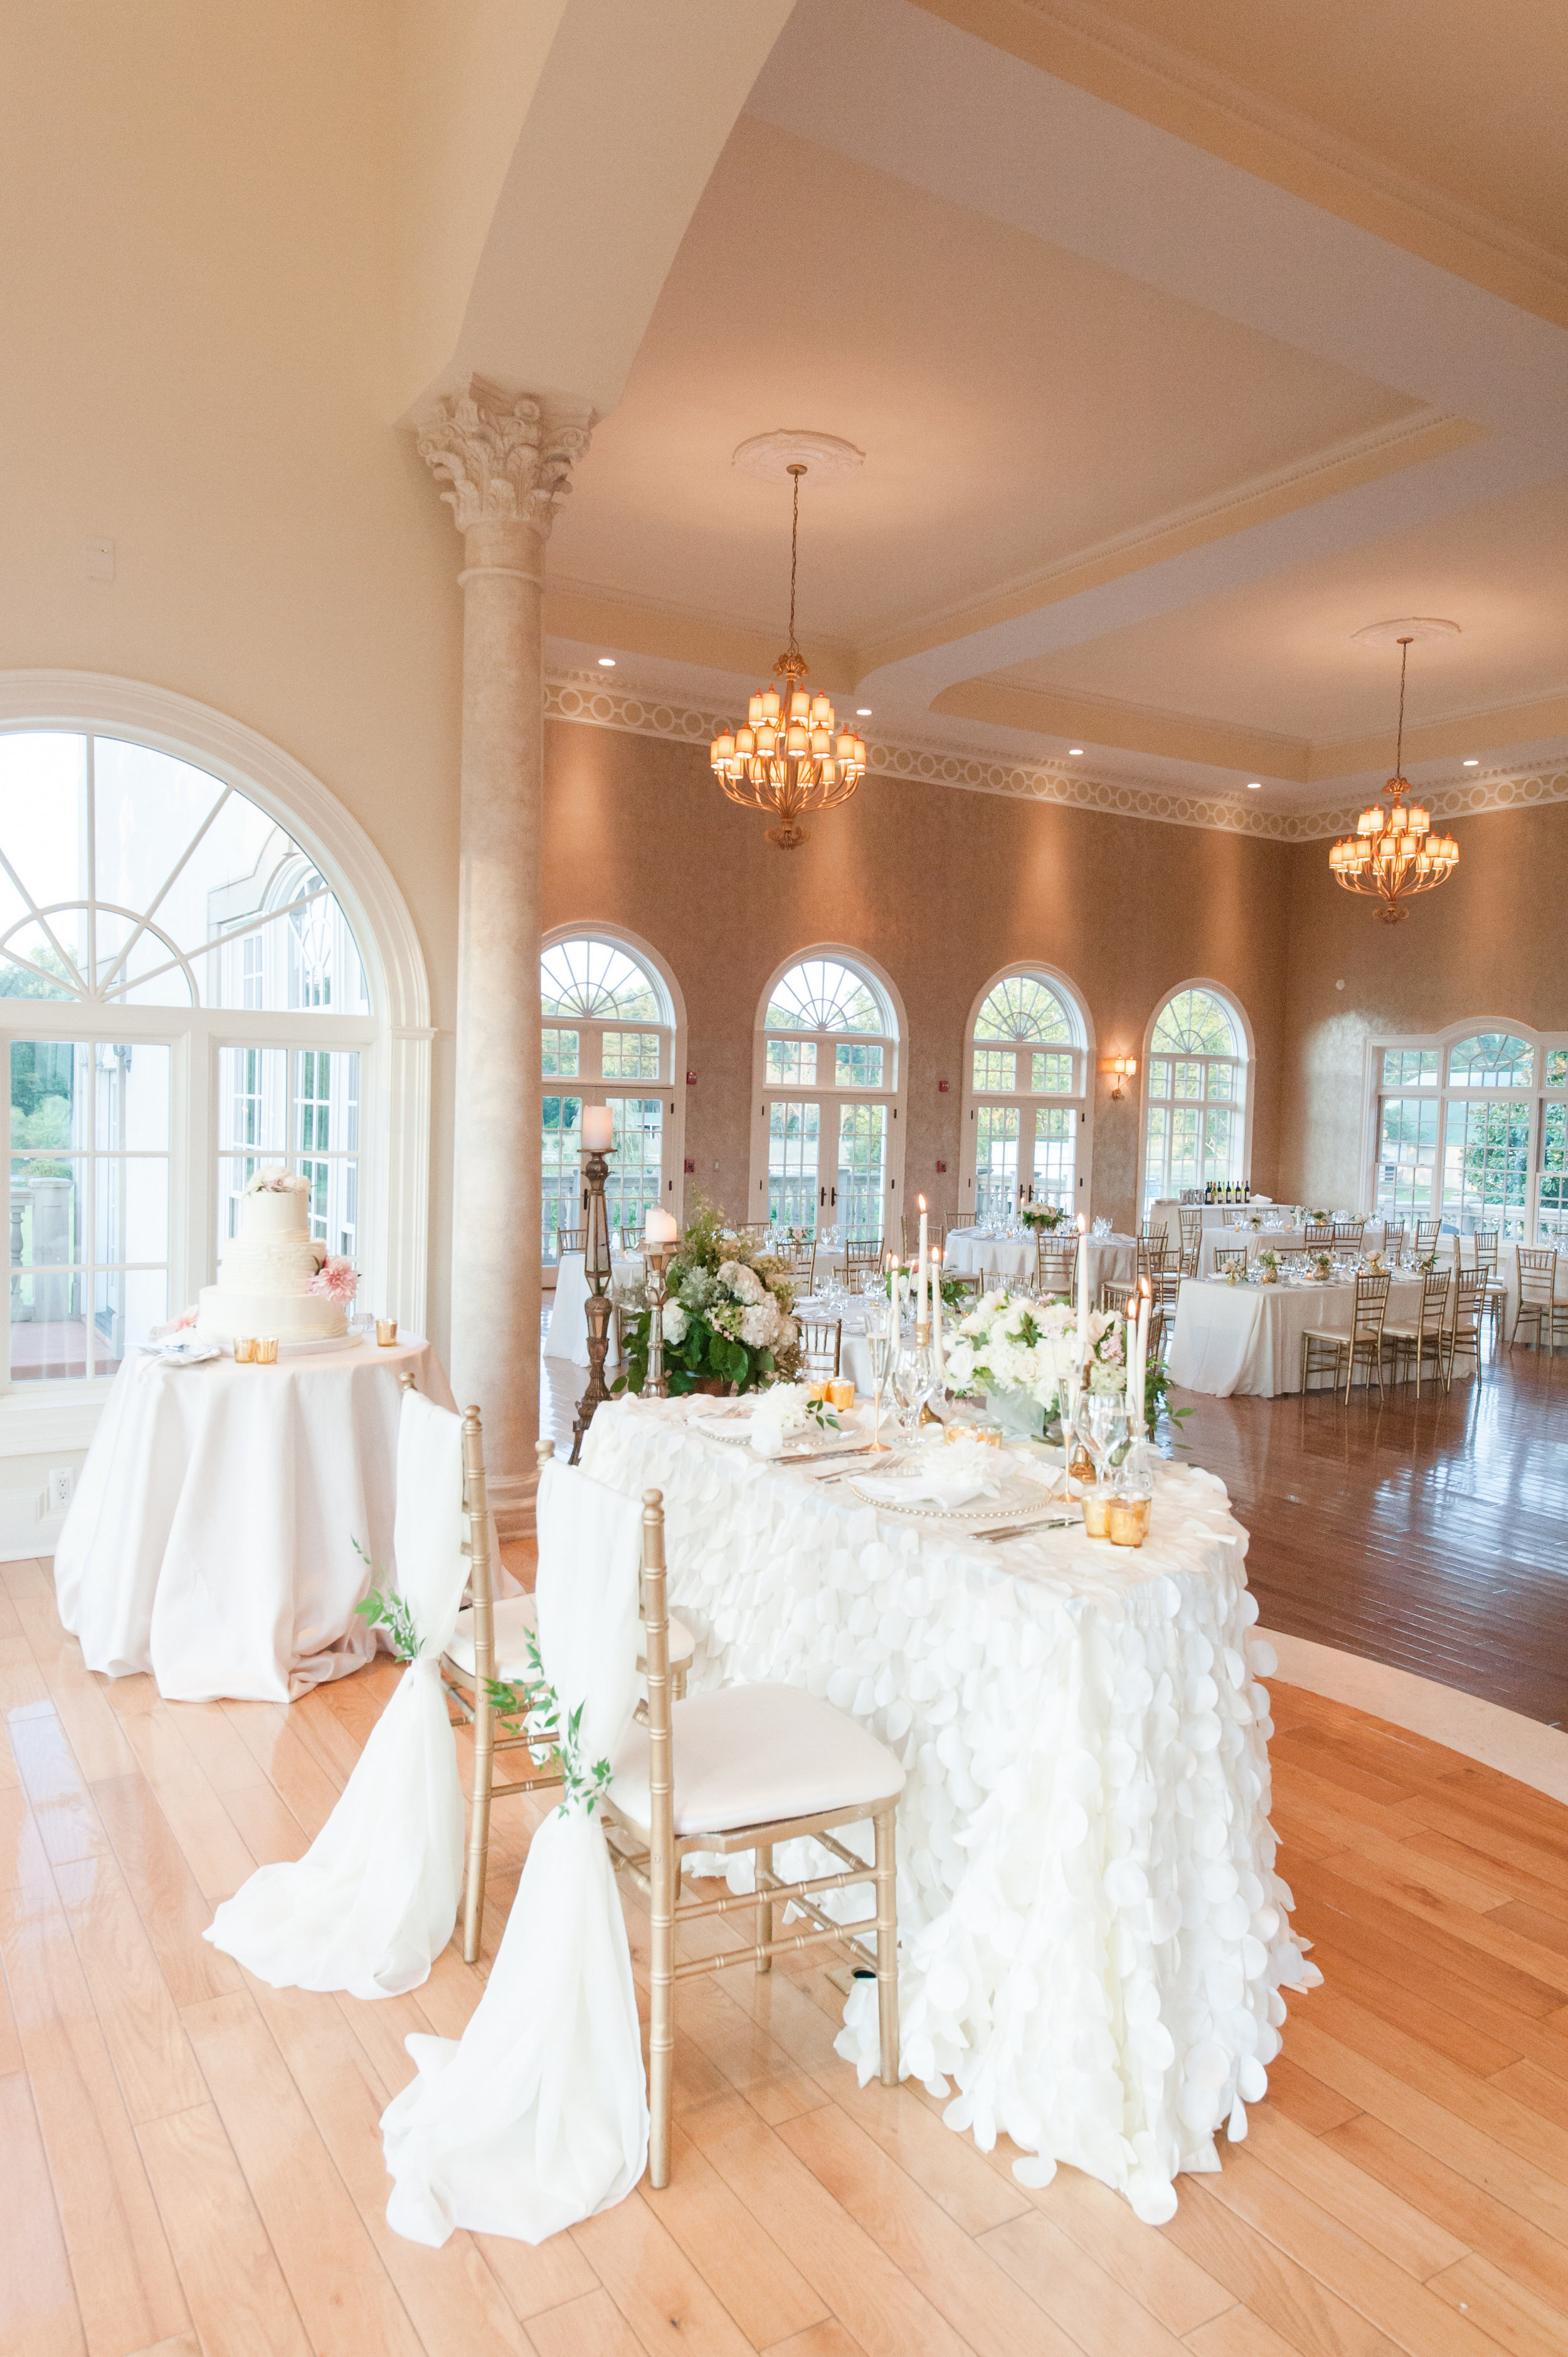 MORAIS VINEYARDS WEDDING A BEYOUTIFUL FETE EVENTS & DESIGN  - VIRGINIA AND DC WEDDING PLANNER 10.jpg